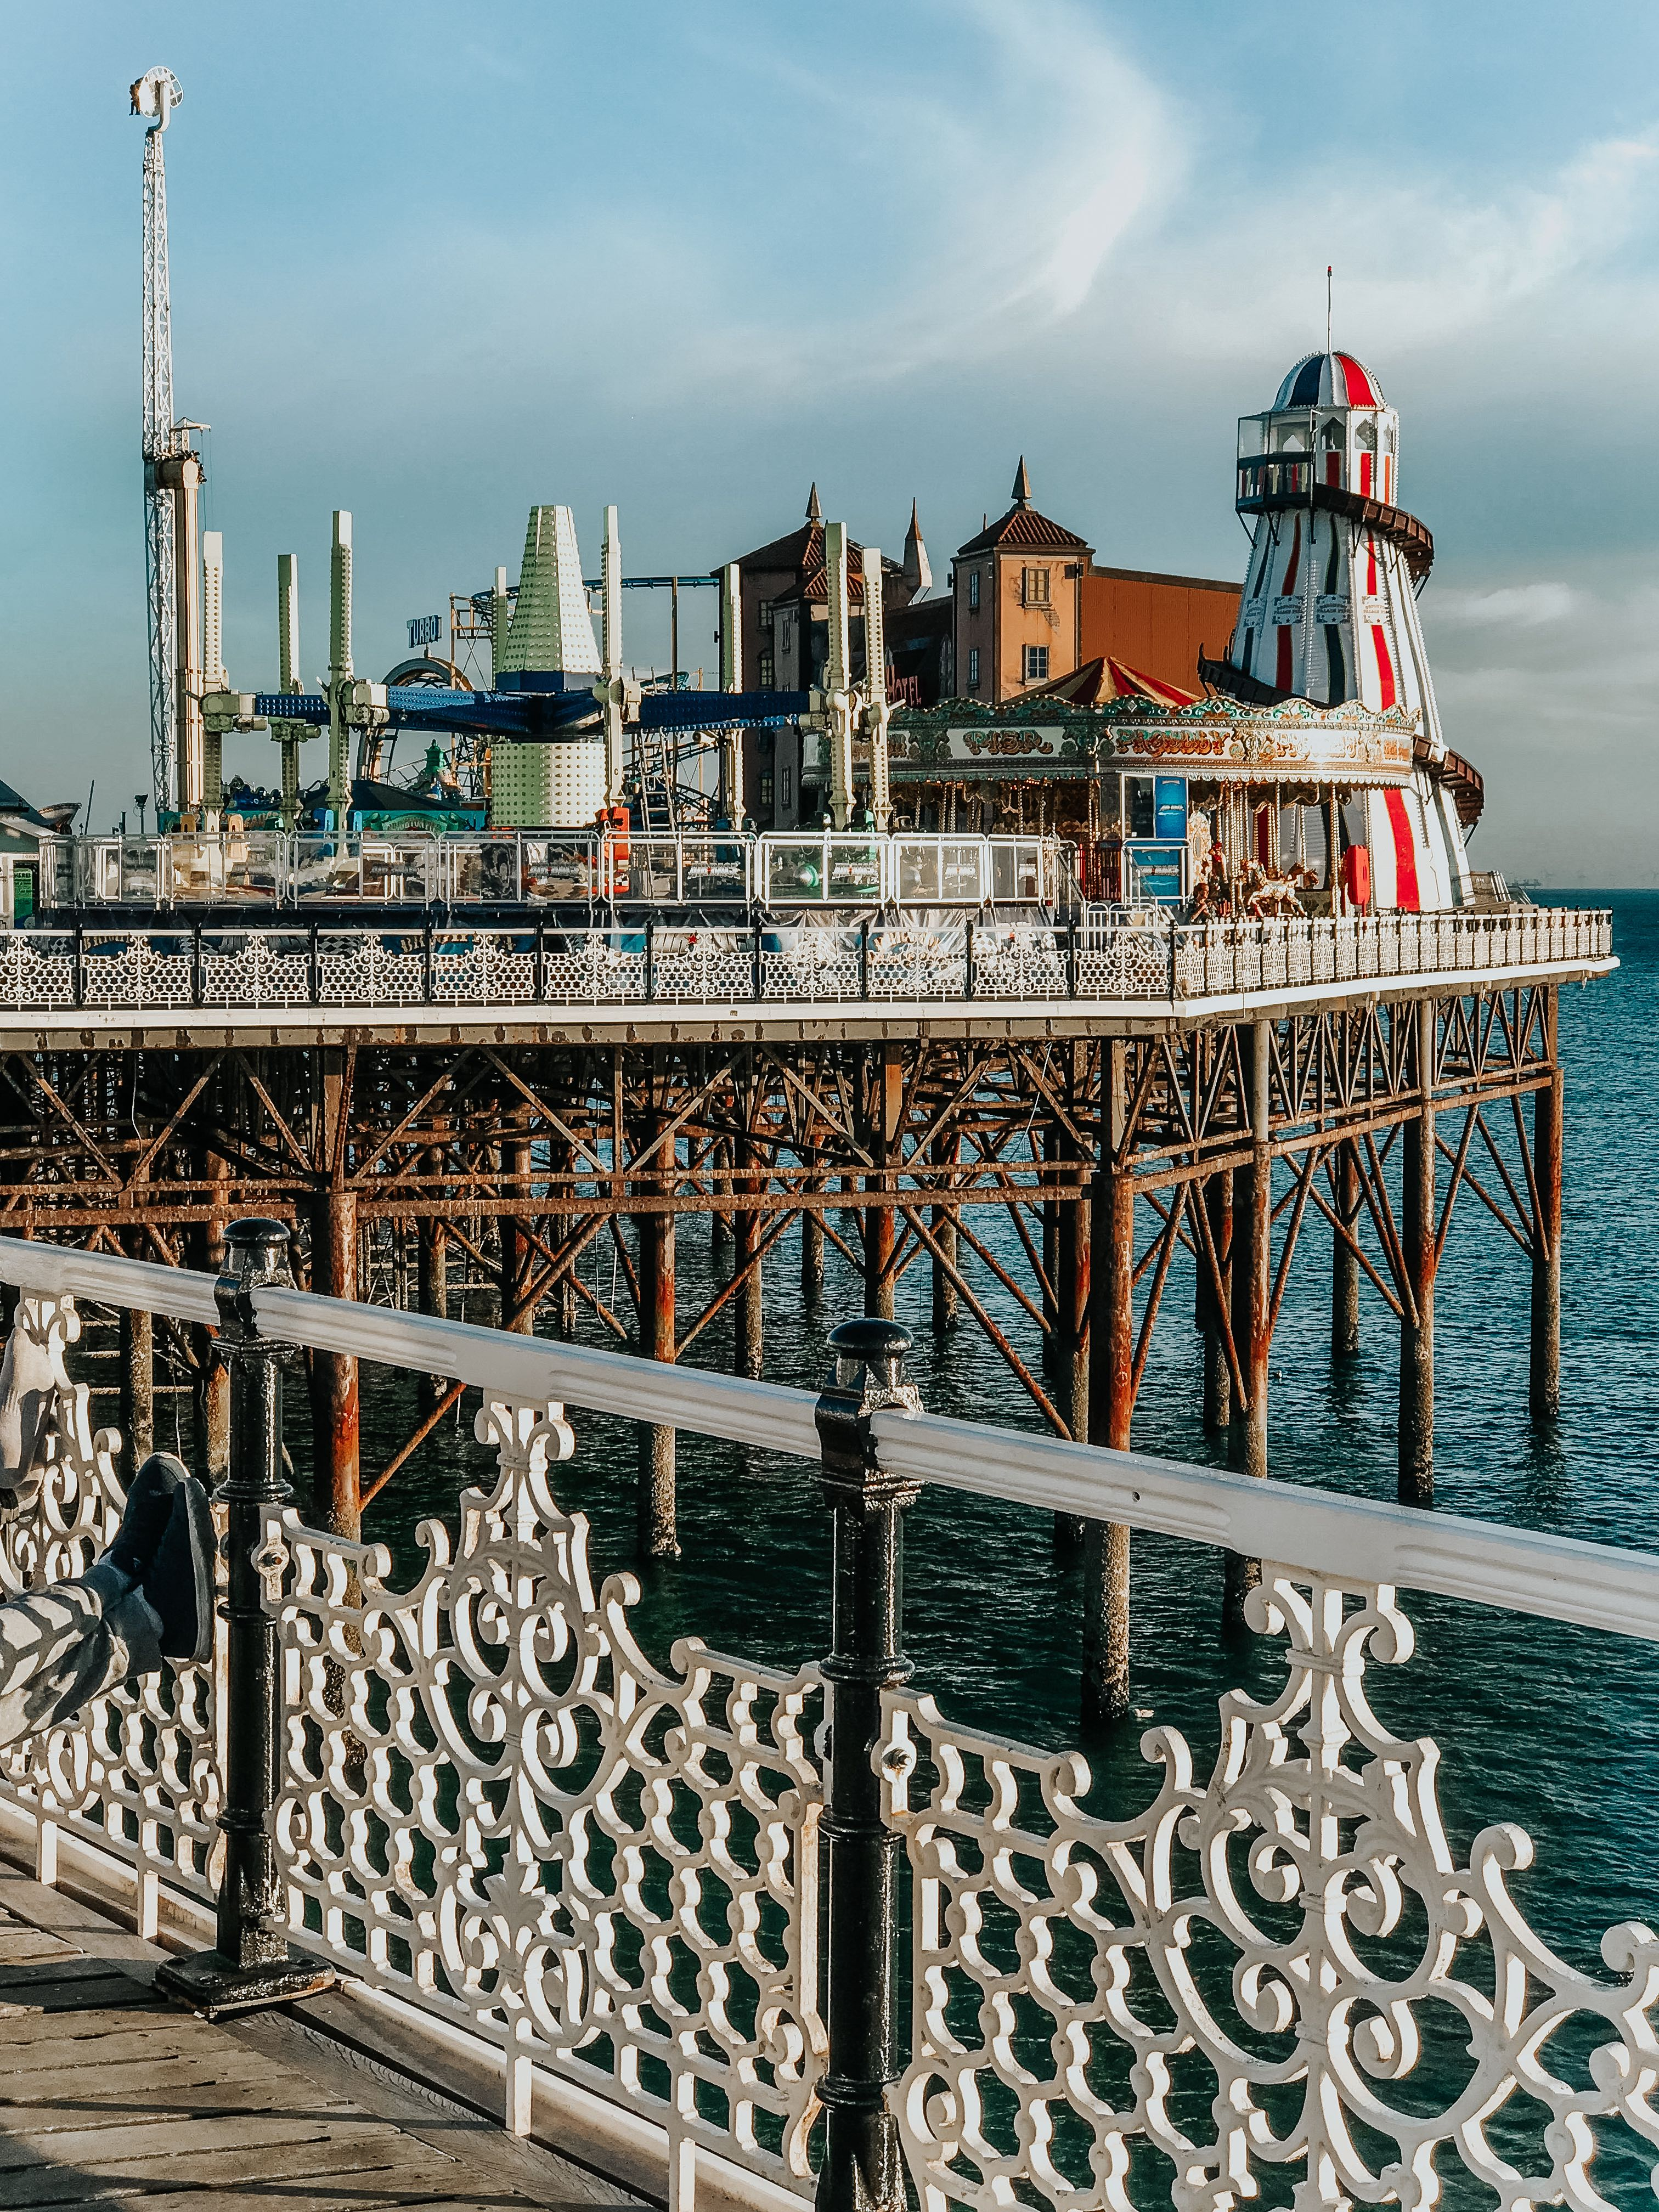 Visiting England's seaside town Brighton